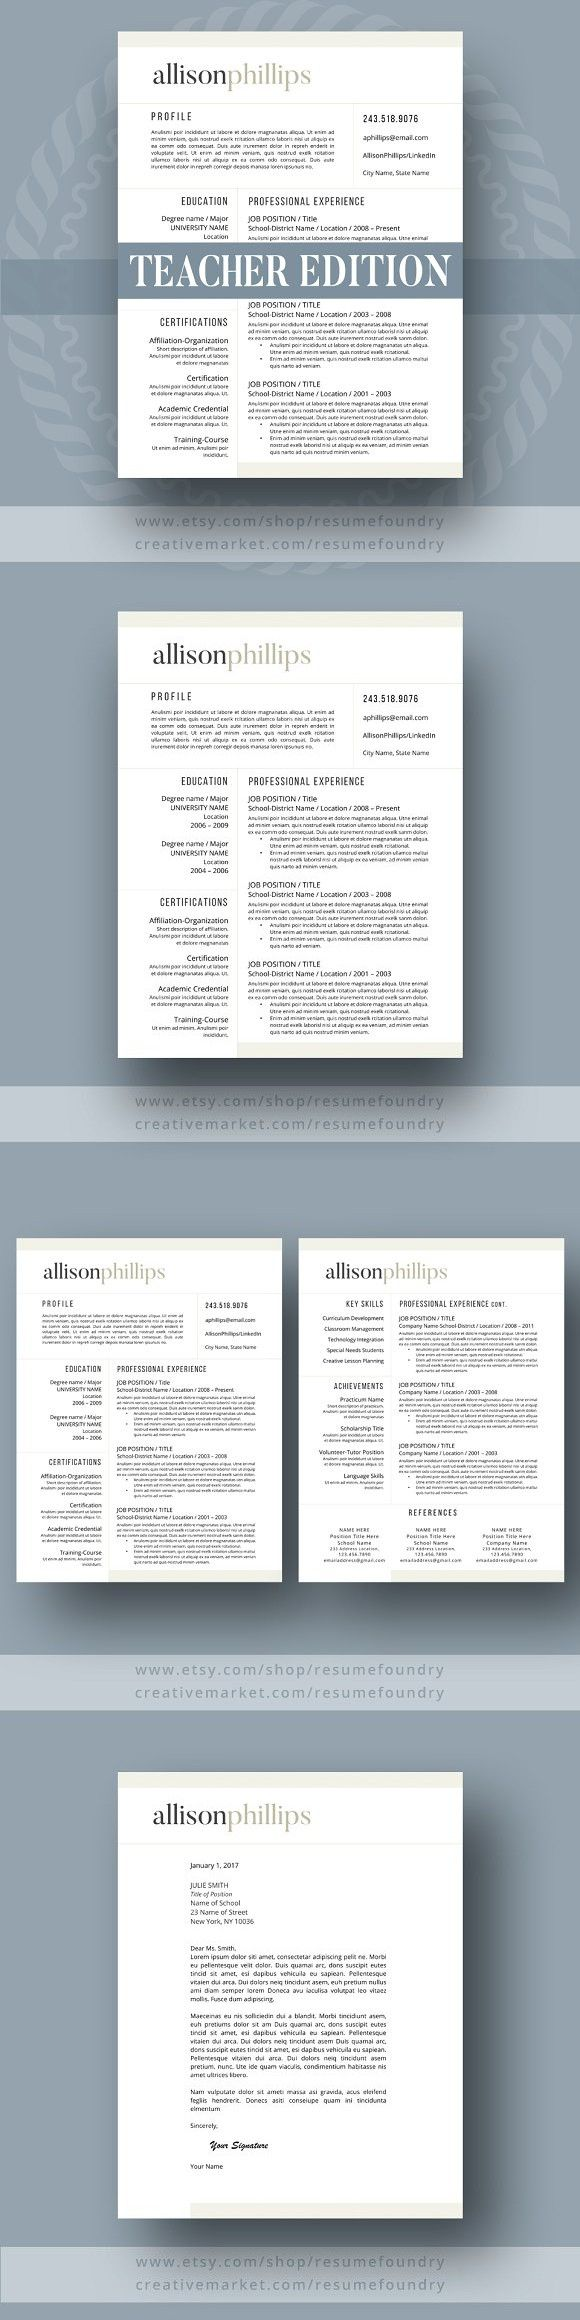 Teacher Resume Template - 1,2,3, Pag. Resume Templates